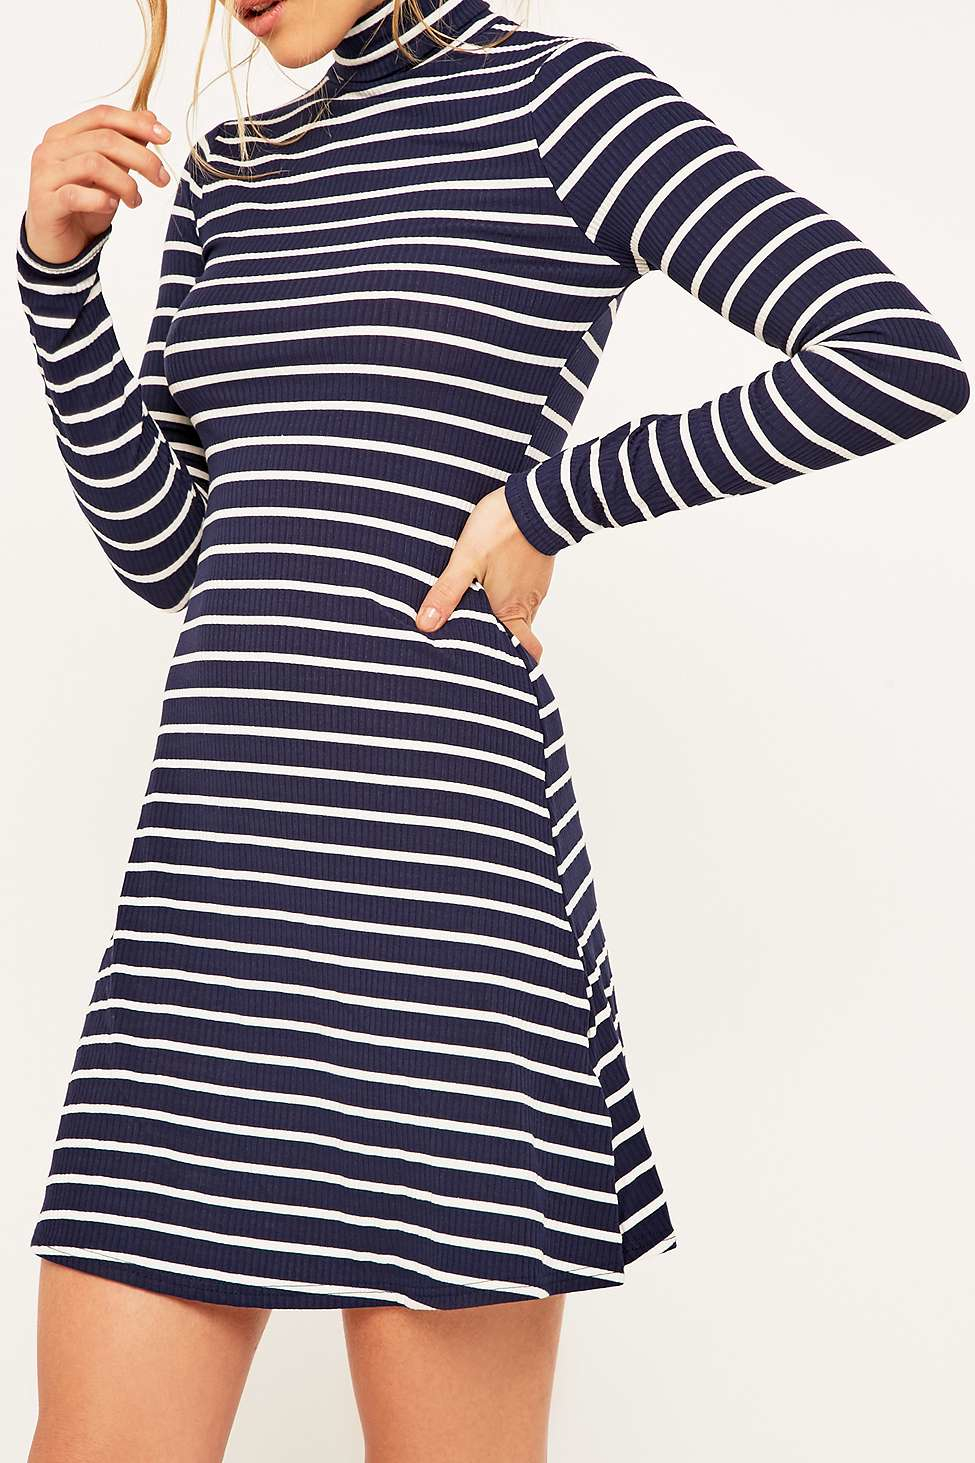 492219176a2 Striped Turtleneck Dress Manufacturers. Shop Madewell for women s jeans